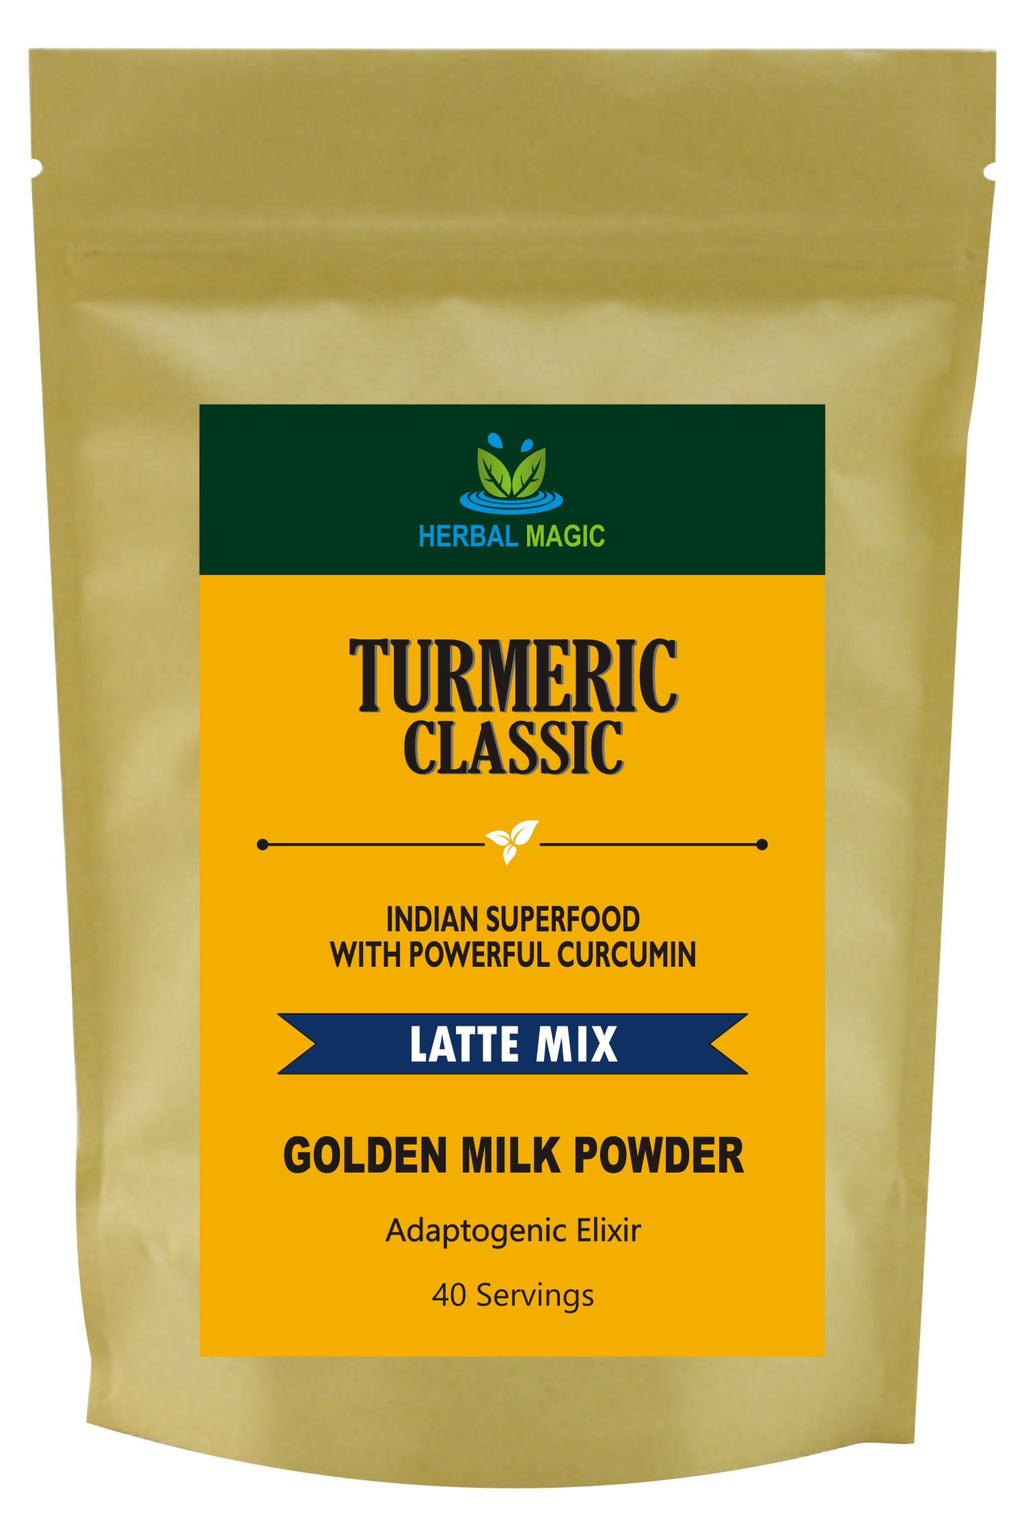 Herbal Magic Turmeric Classic Latte Mix - 100% Organic Indian Superfood With Powerful Curcumin - Golden Milk Powder, 100g